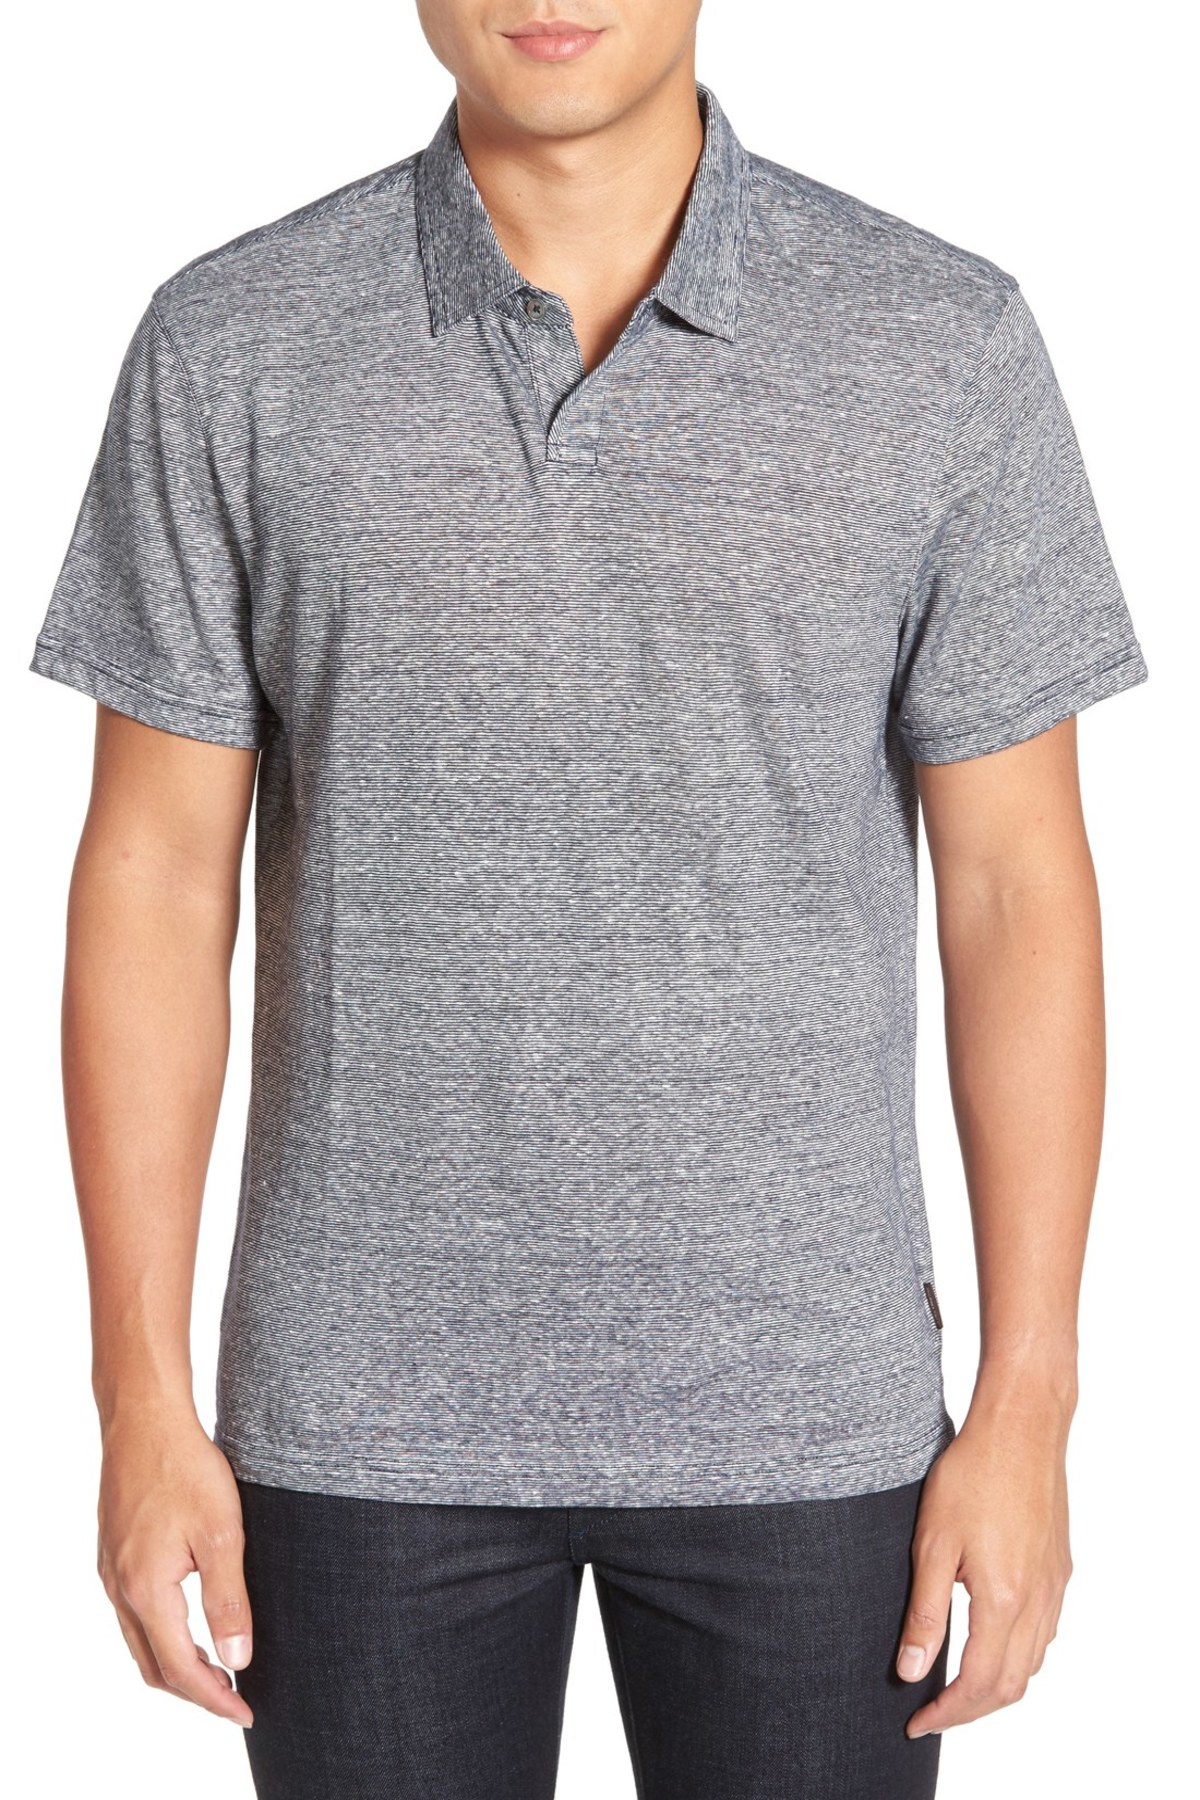 Michael Kors Microstripe Cotton Linen Polo In Gray For